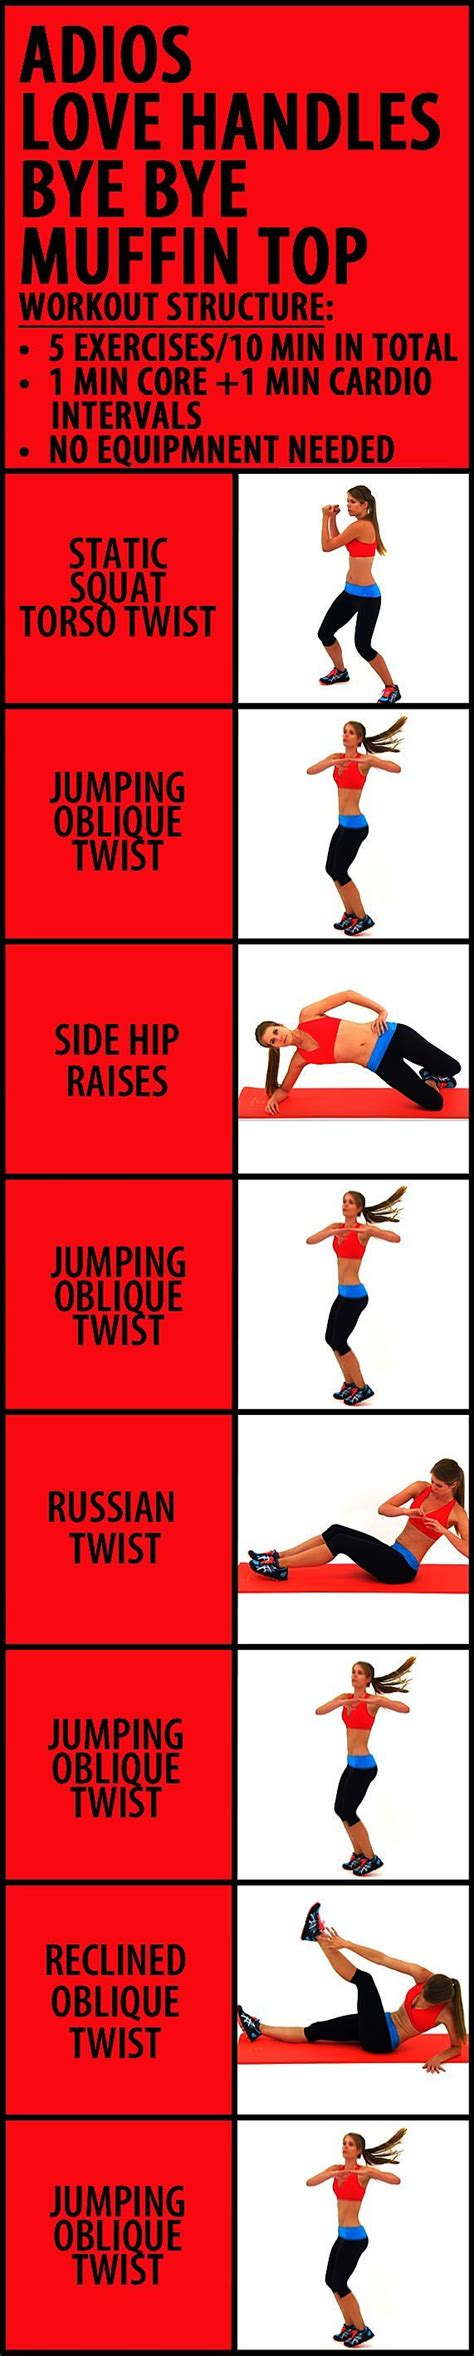 minute adios love handles bye bye muffin top workout